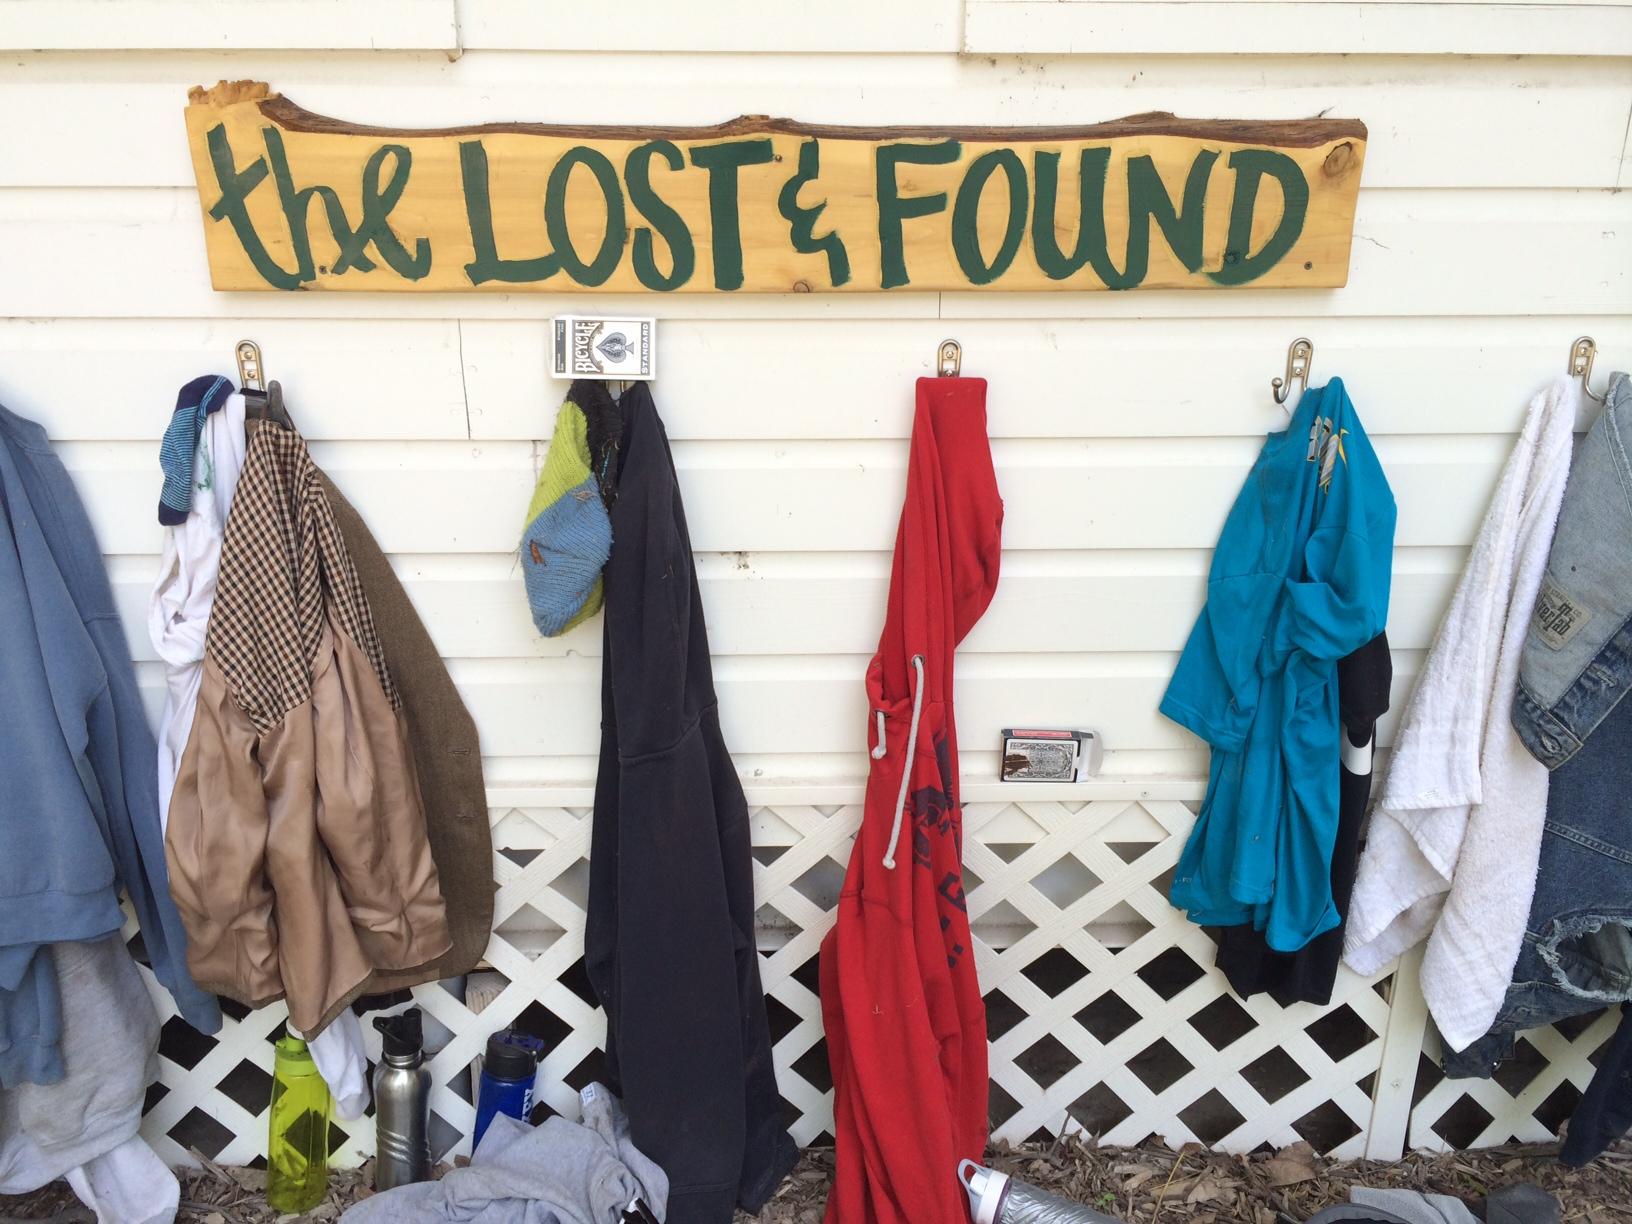 New and improved lost and found area!